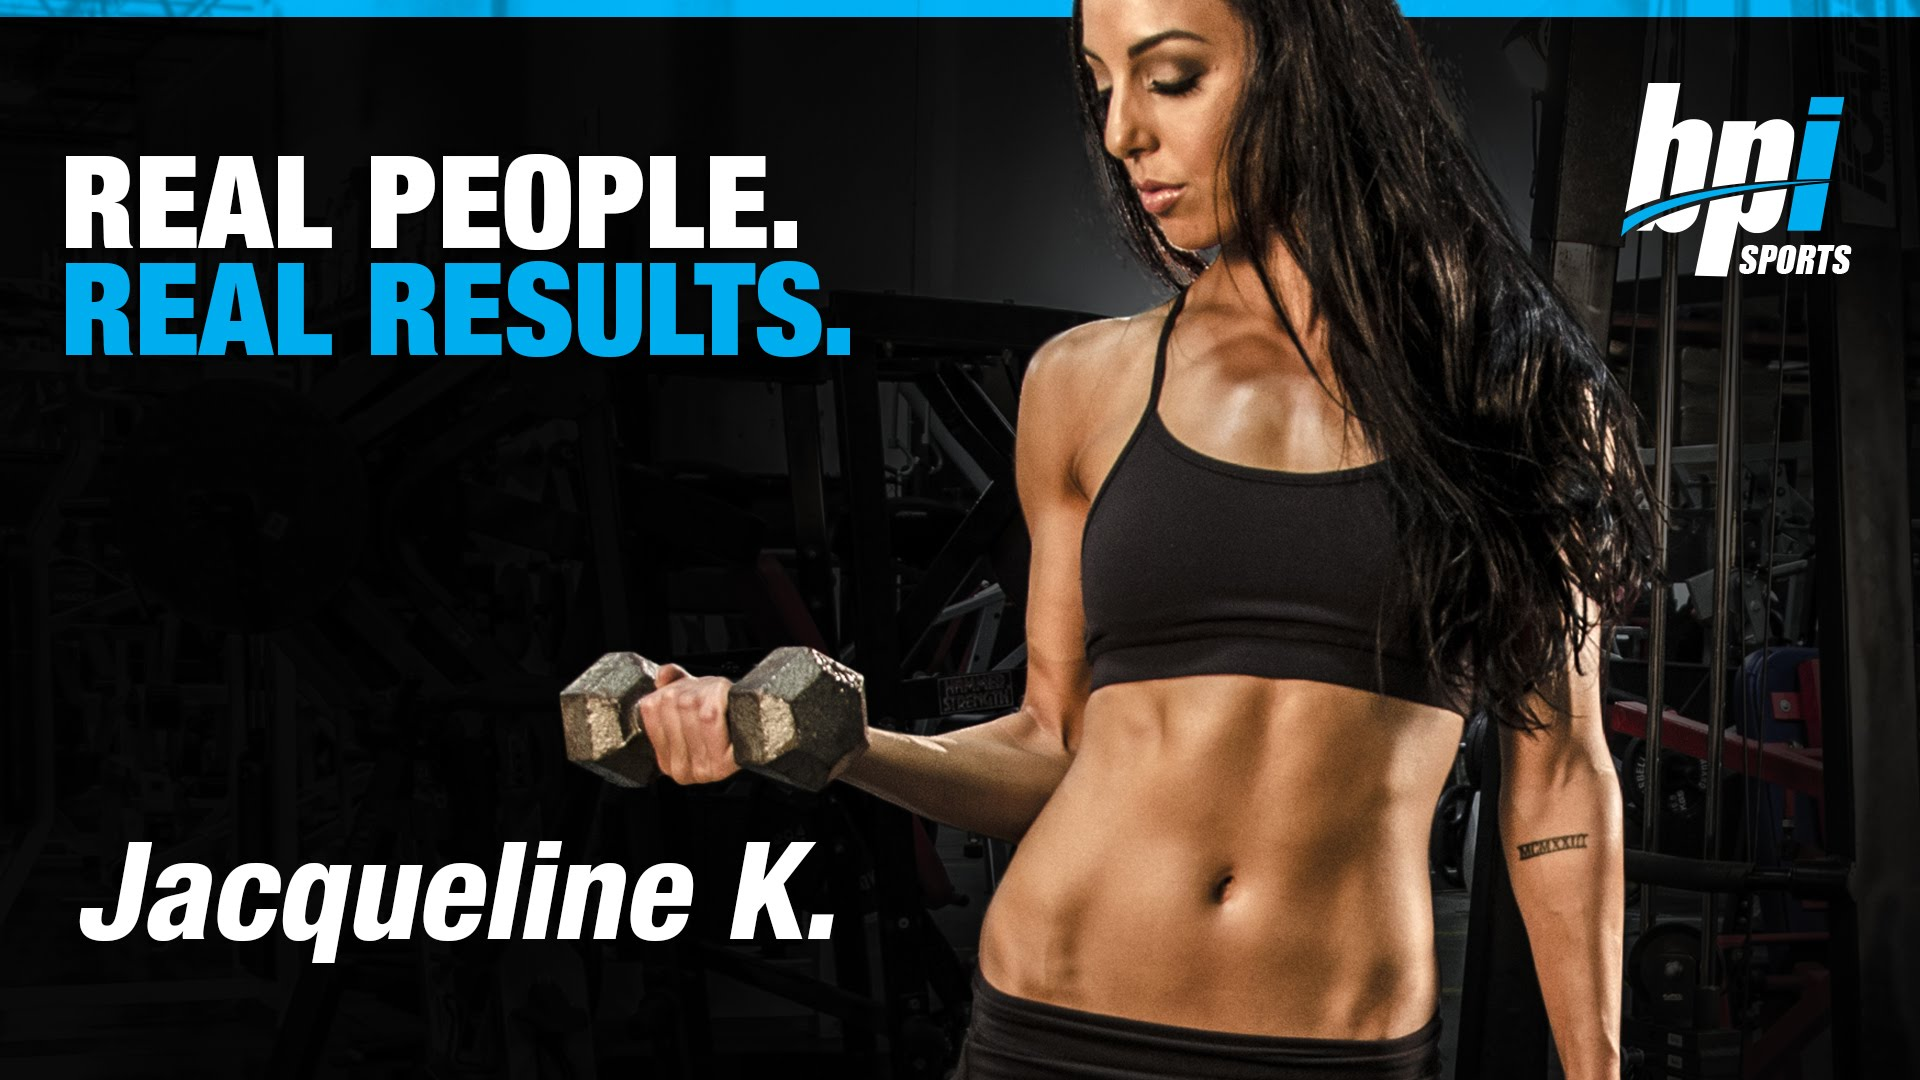 Real-People-Real-Results-Jacqueline-BPI-Sports